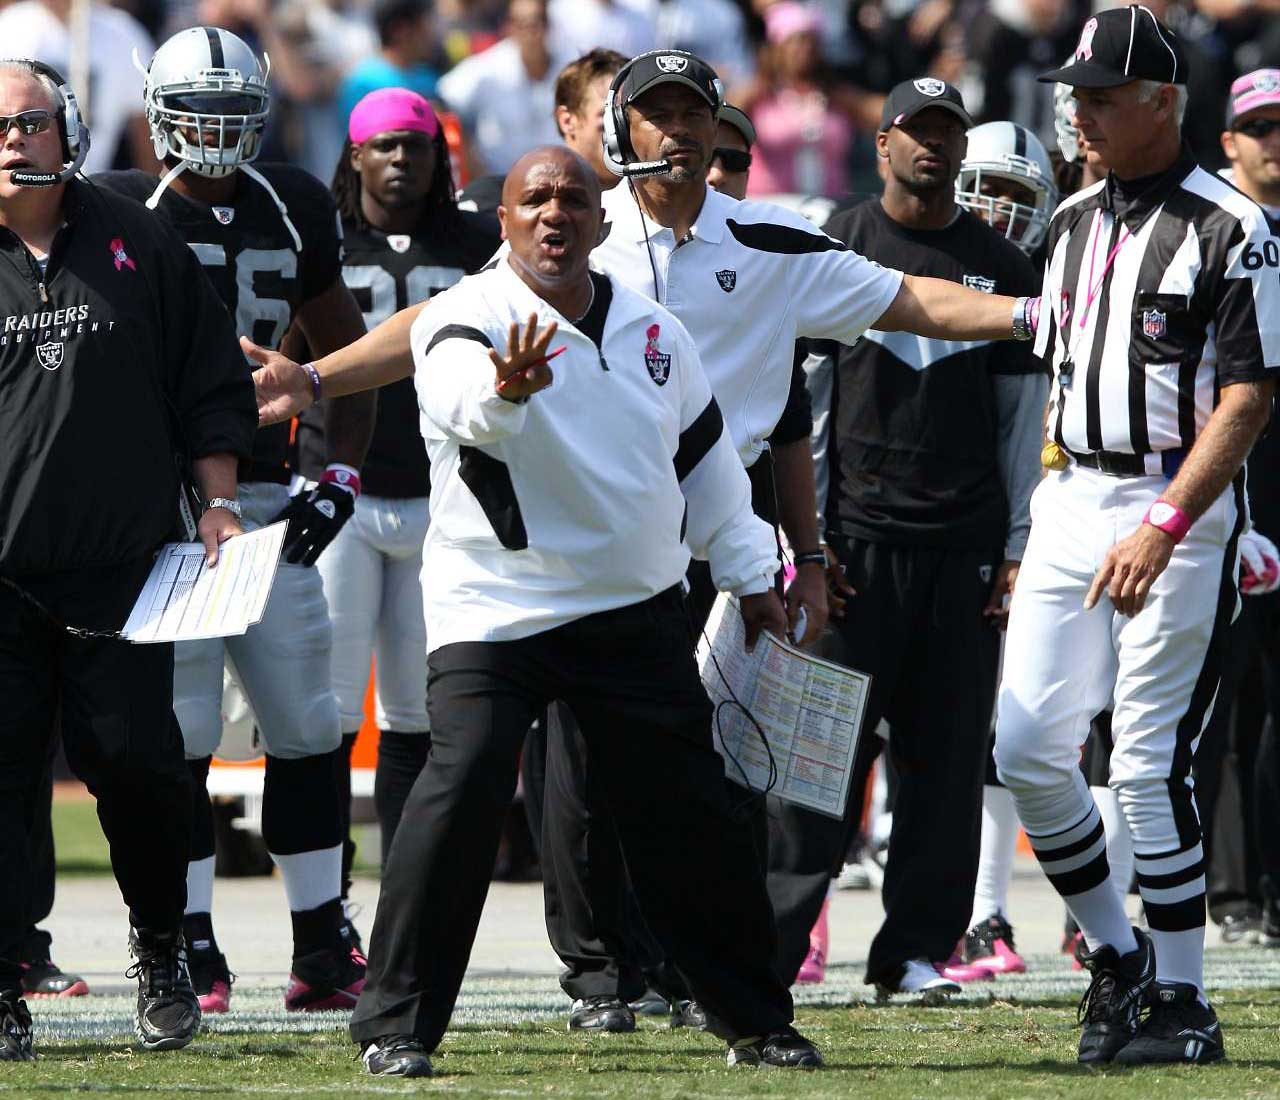 Hue Jackson's first year as a head coach at any level ended with the Raiders missing the playoffs at 8-8 and having mortgaged their future in the process by giving up a king's ransom in a trade for quarterback Carson Palmer.